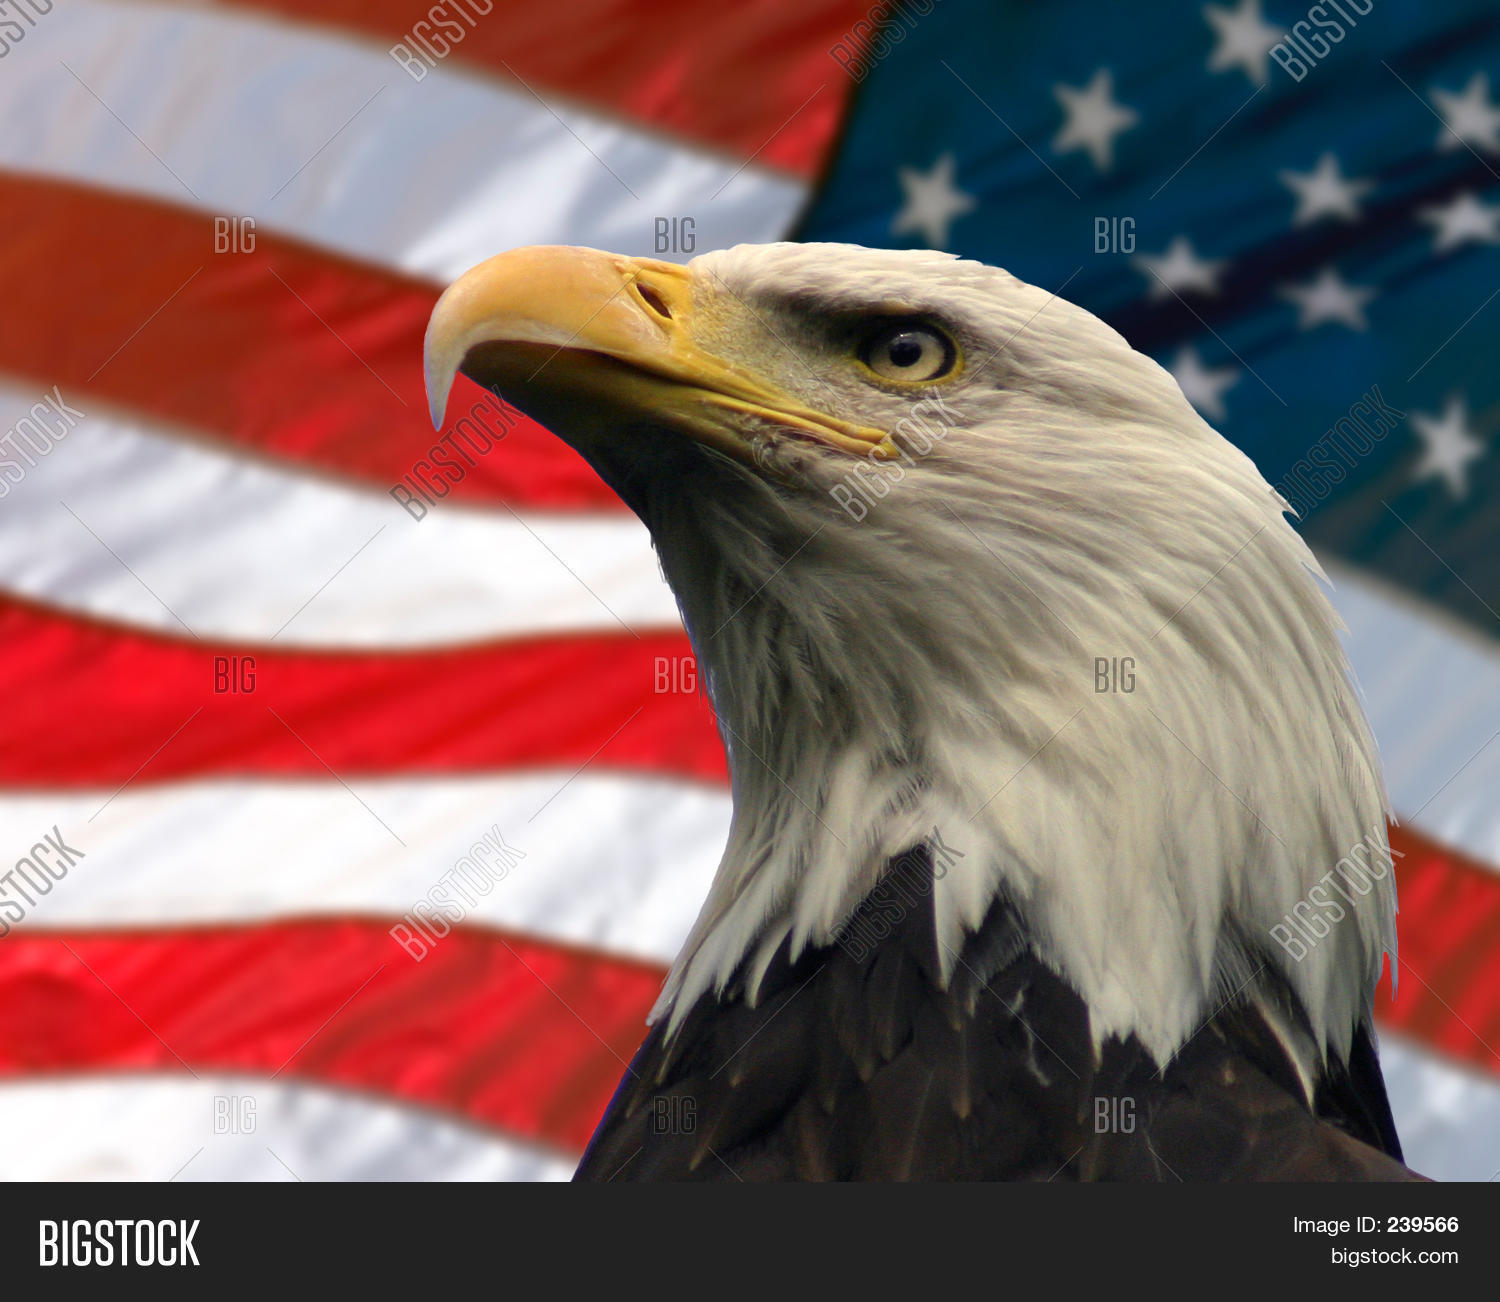 Image result for The American eagle